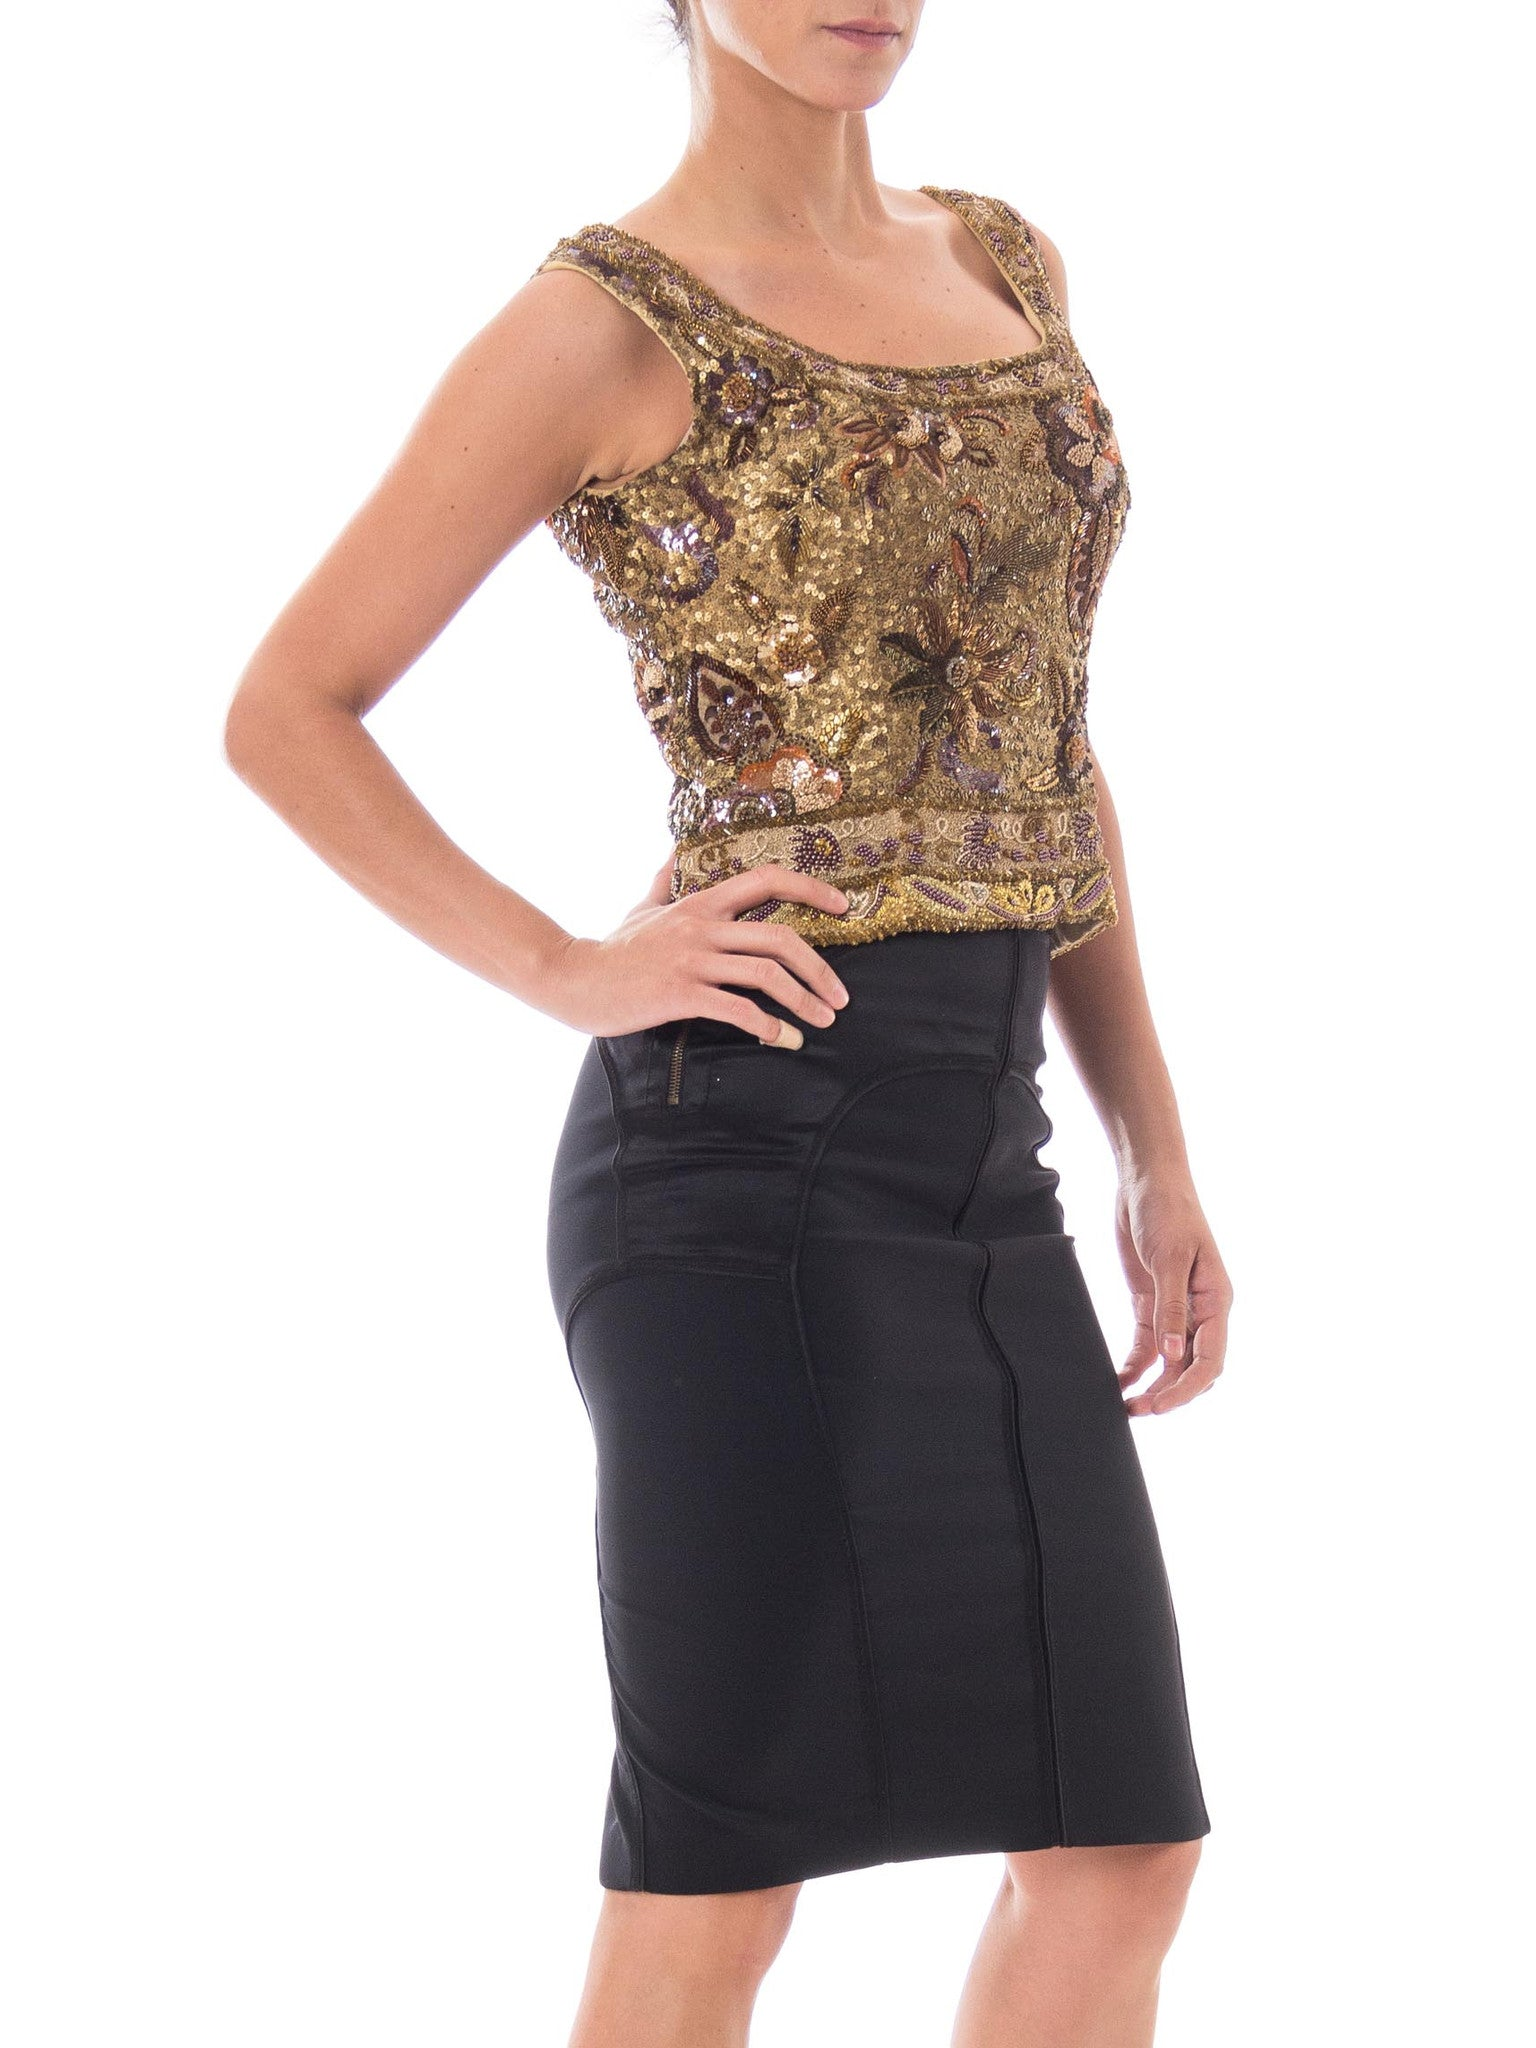 1990S Champagne Gold Silk Heavily Beaded & Embroidered Sleeveless Top